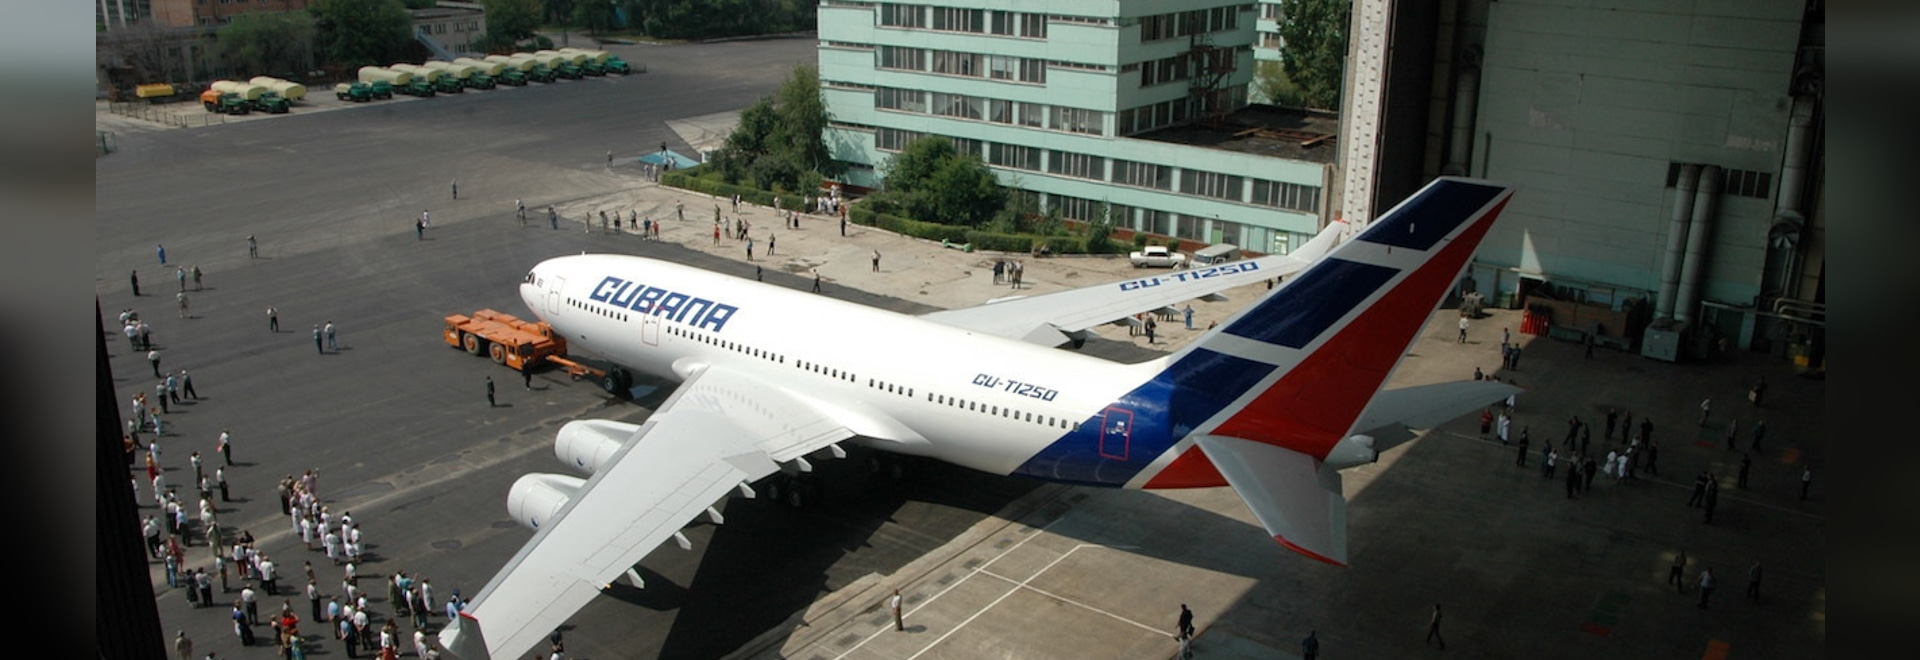 The first Cubana Ilyushin Il-96-300 rolls out of VASO's assembly hall in Voronezh, Russia, in 2005. (Photo: Vladimir Karnozov)